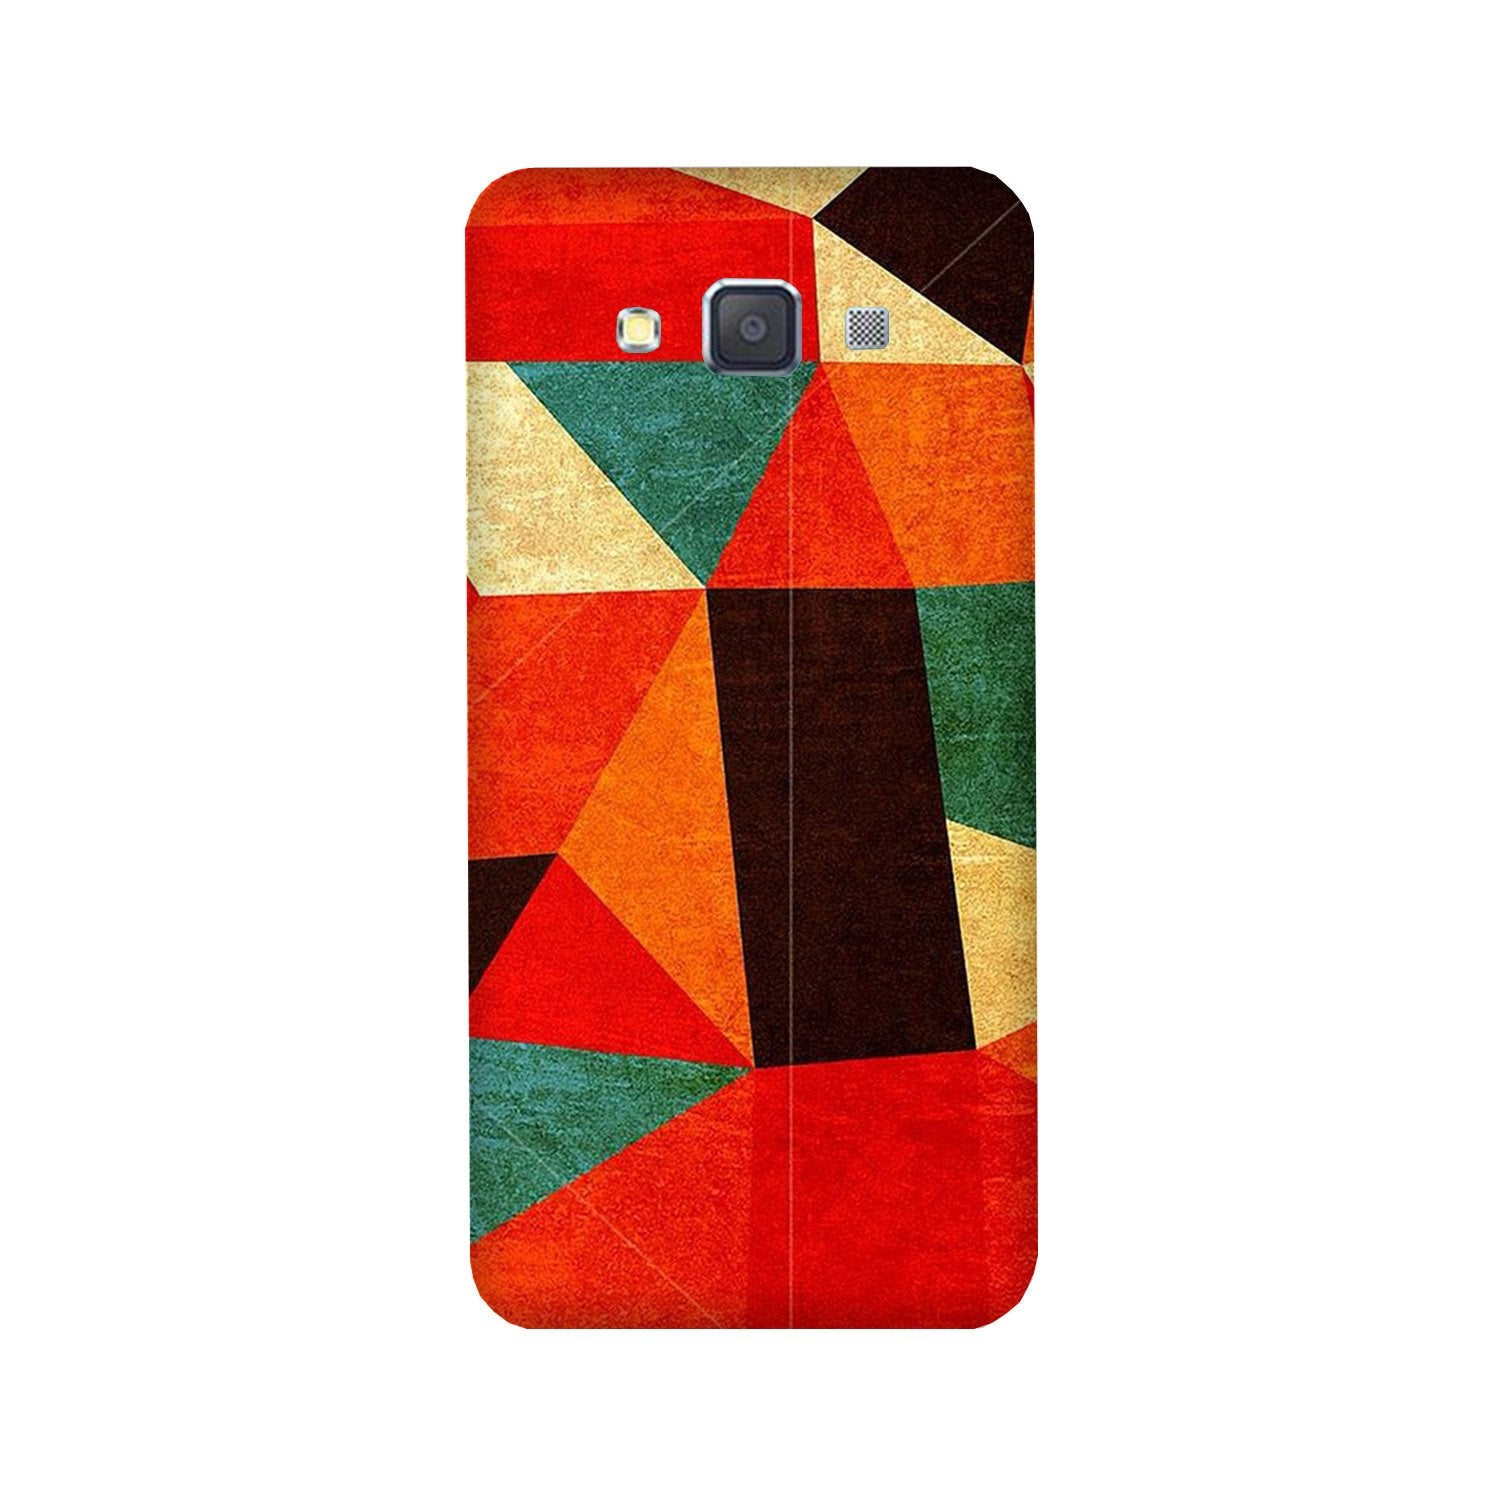 Modern Art Case for Galaxy A8 (2015) (Design - 203)